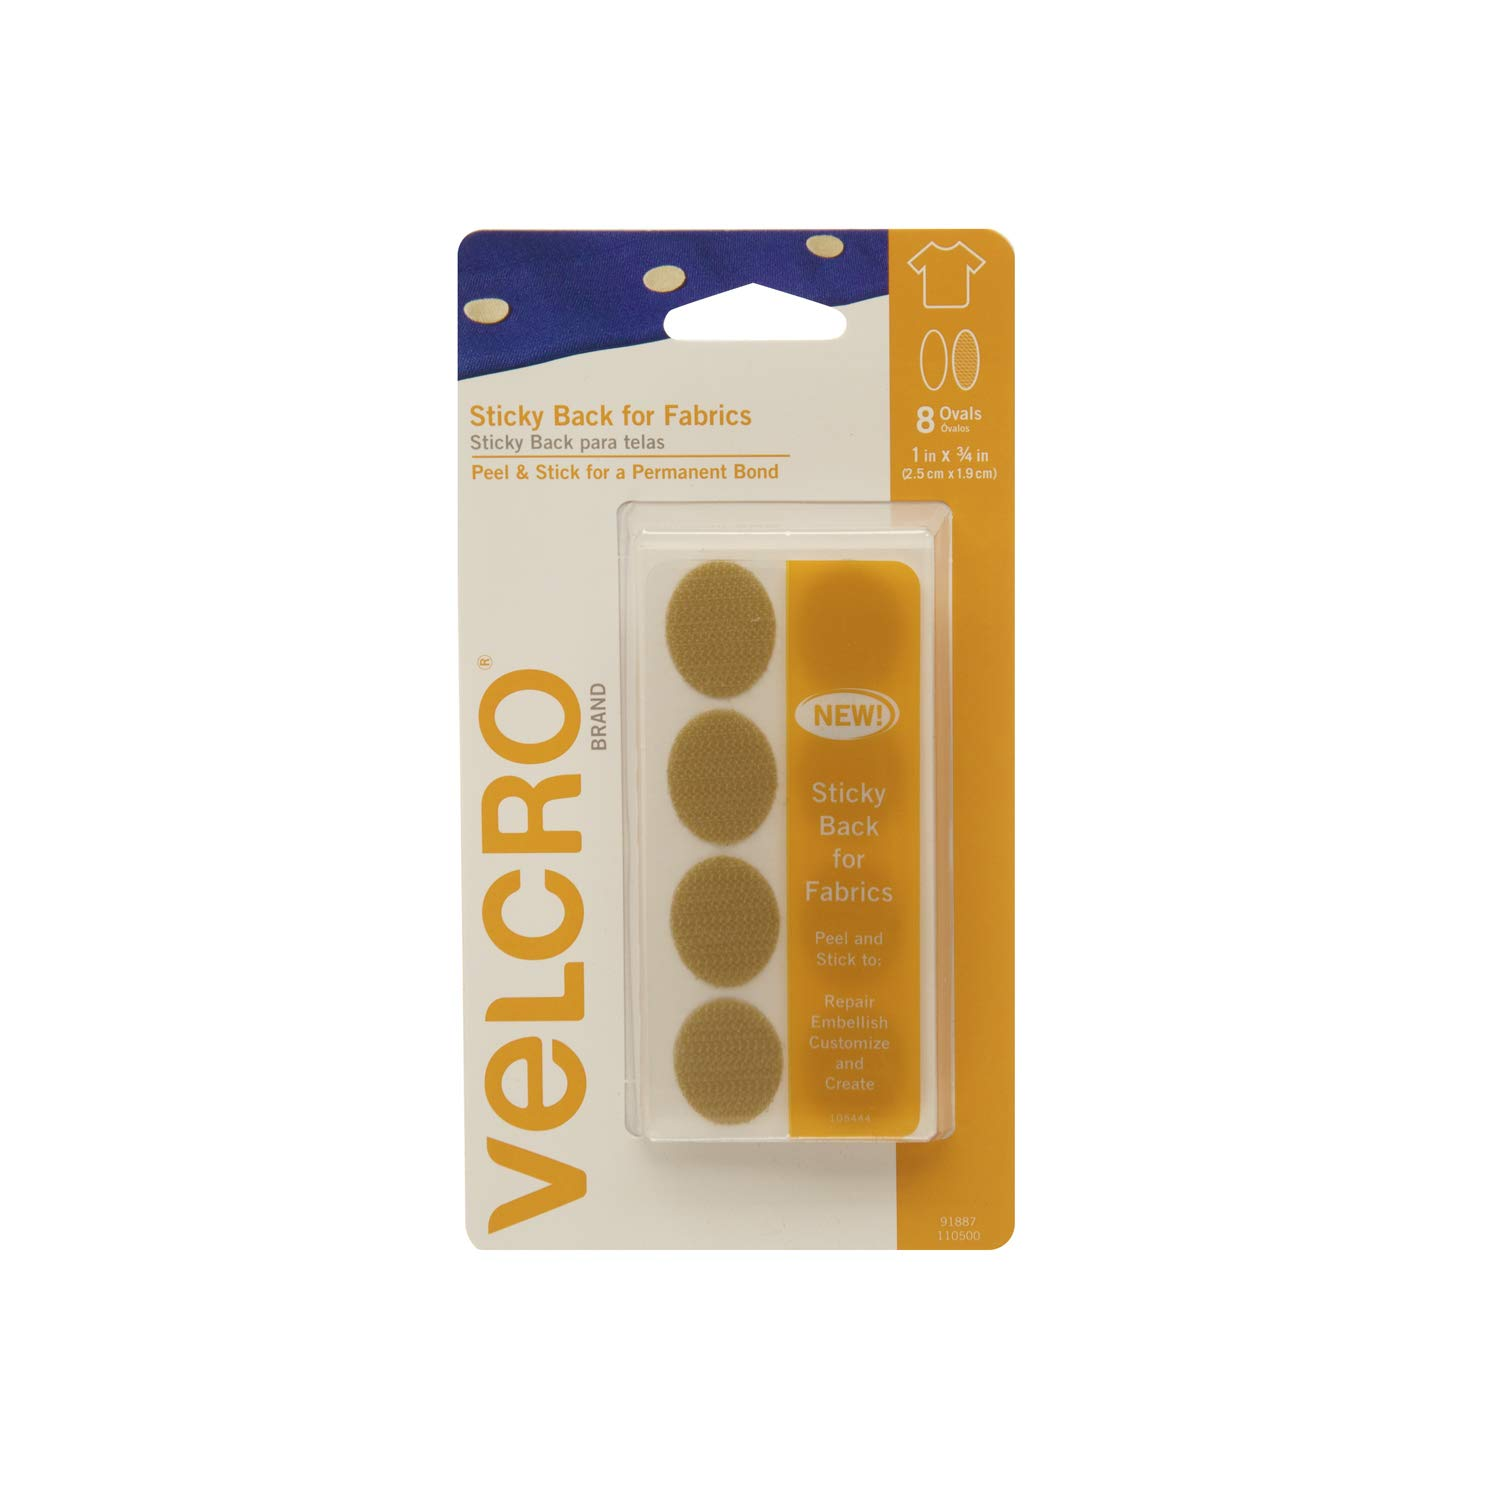 VELCRO Brand - Sticky Back for Fabrics Fasteners | No Sewing Needed | 1 x 3/4 Ovals - 16 Sets | Black 91901